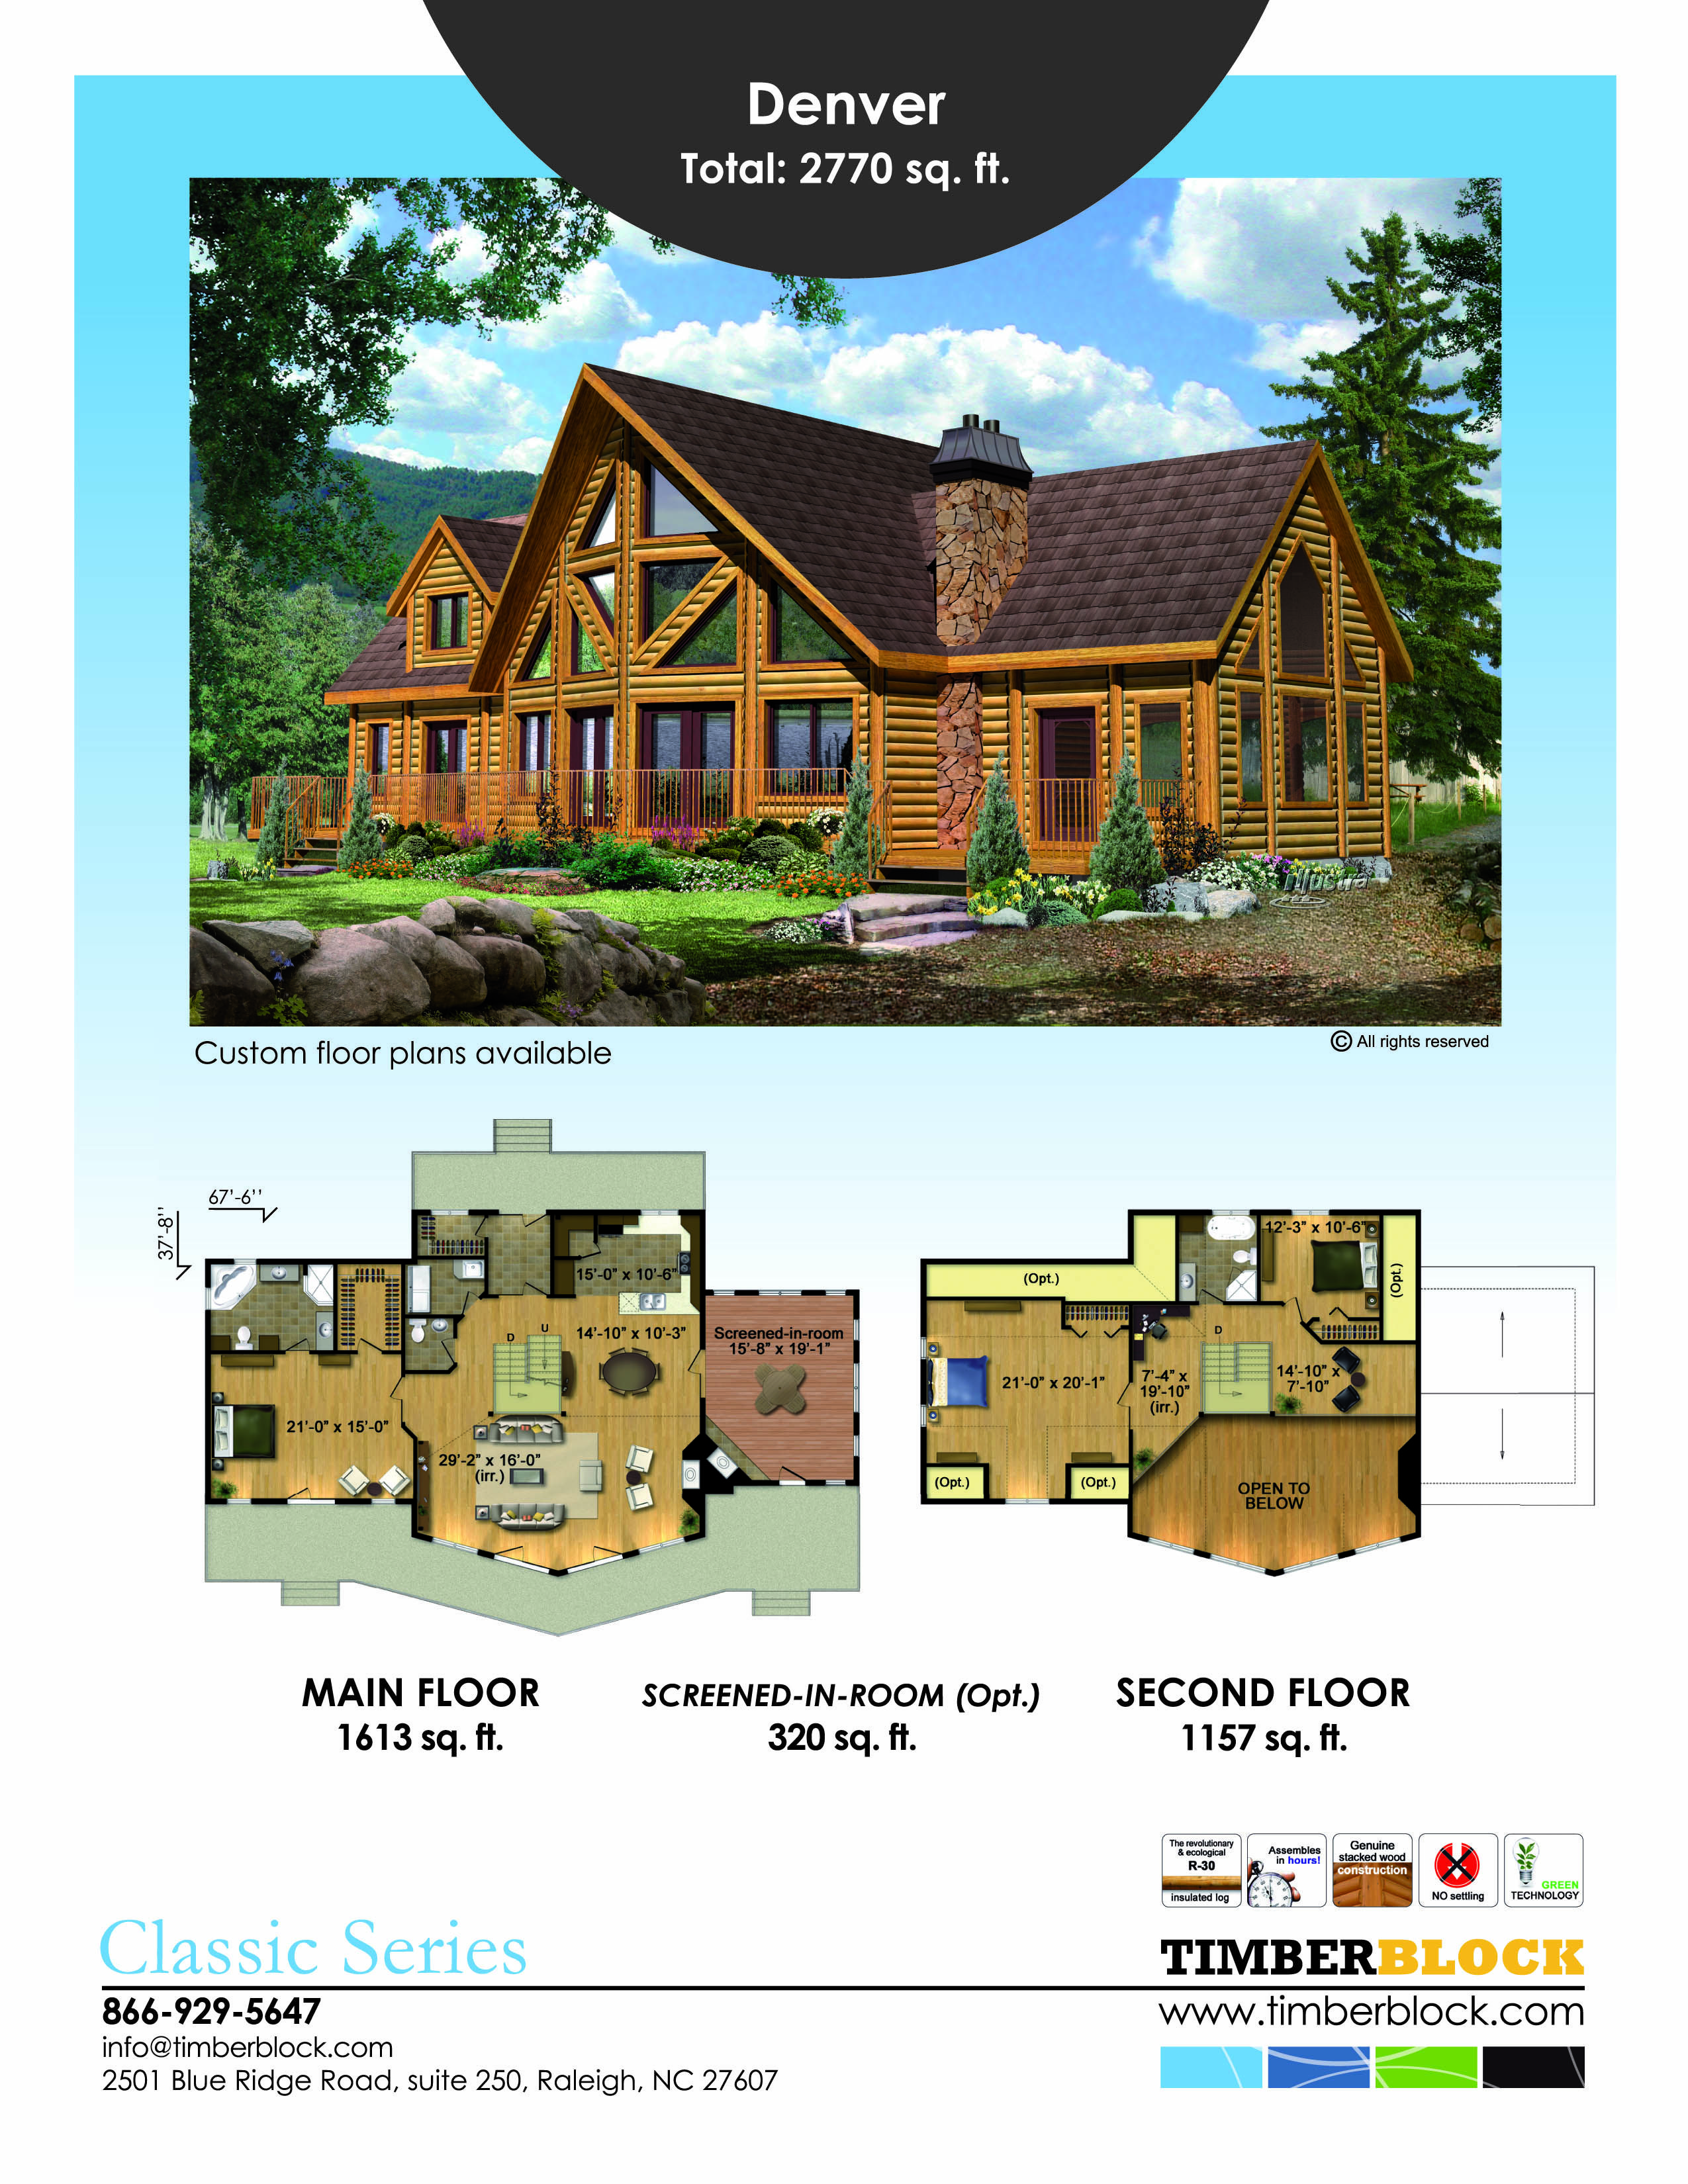 This Is Timber Block S Denver Model From The Classic Series At Over 2700 Square Feet It Has Subst House Plan With Loft Log Home Floor Plans Cabin House Plans